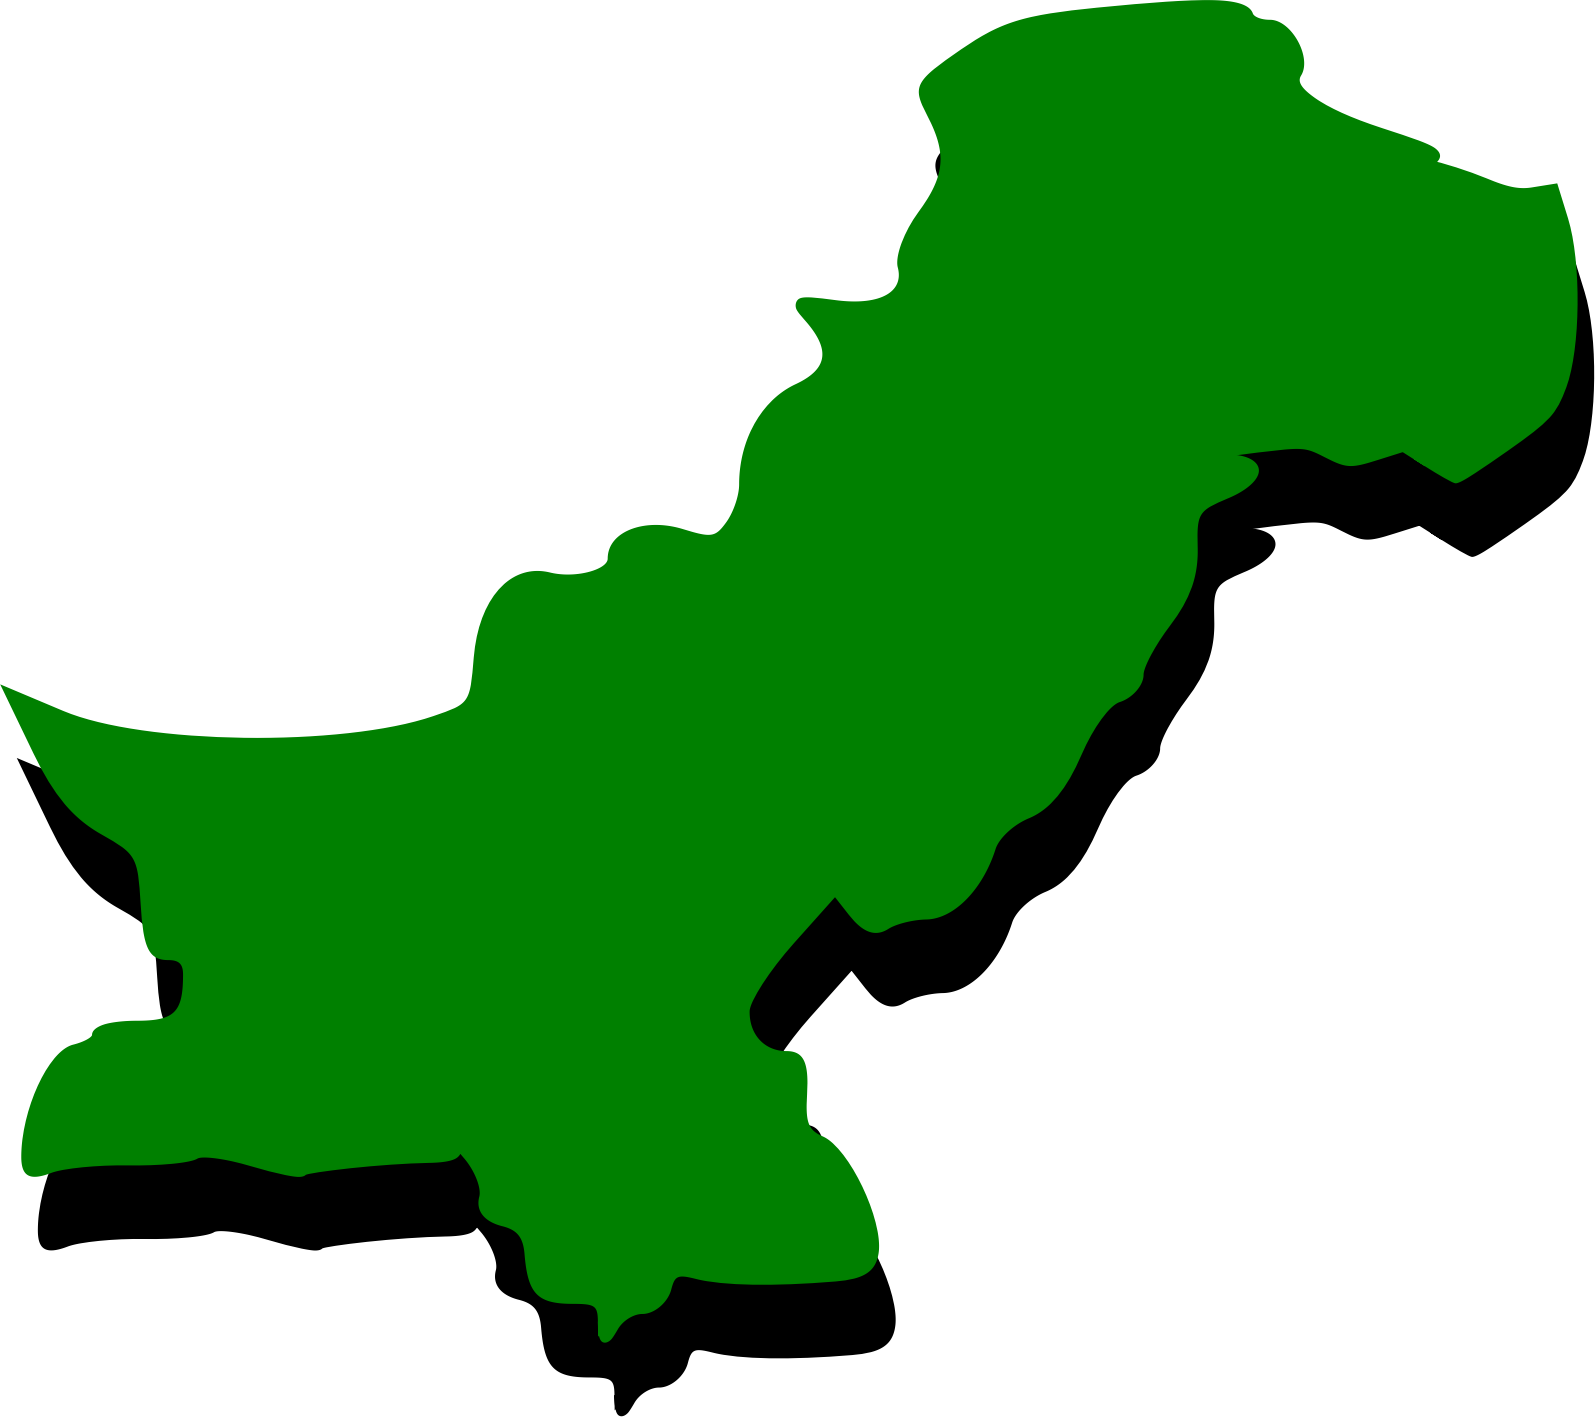 Pakistan clipart Outline Free green Embossed